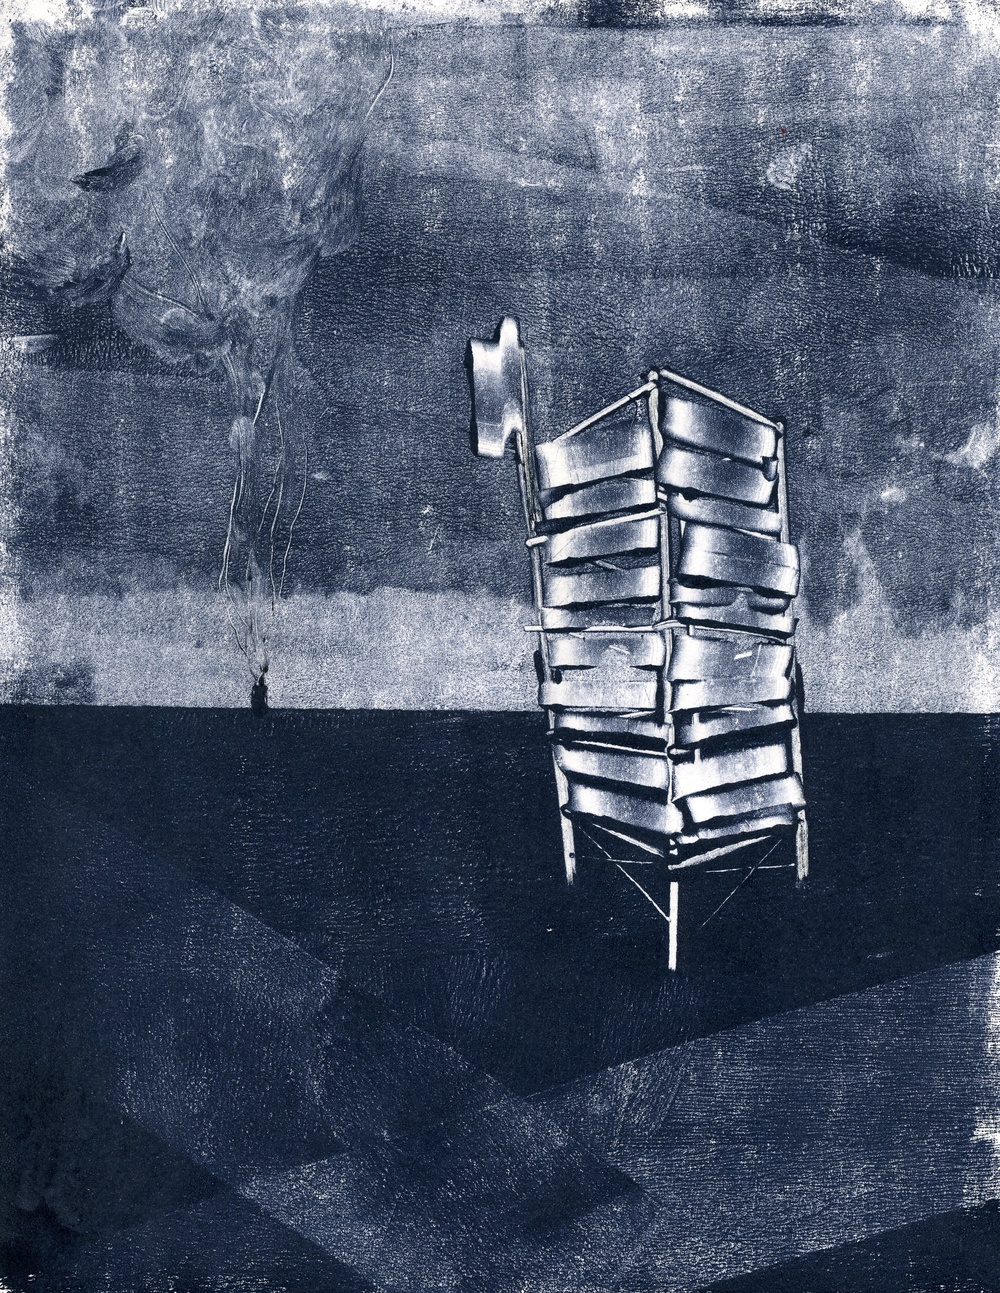 A monotype print by Clive Knights from his Tower series blue ink on paper